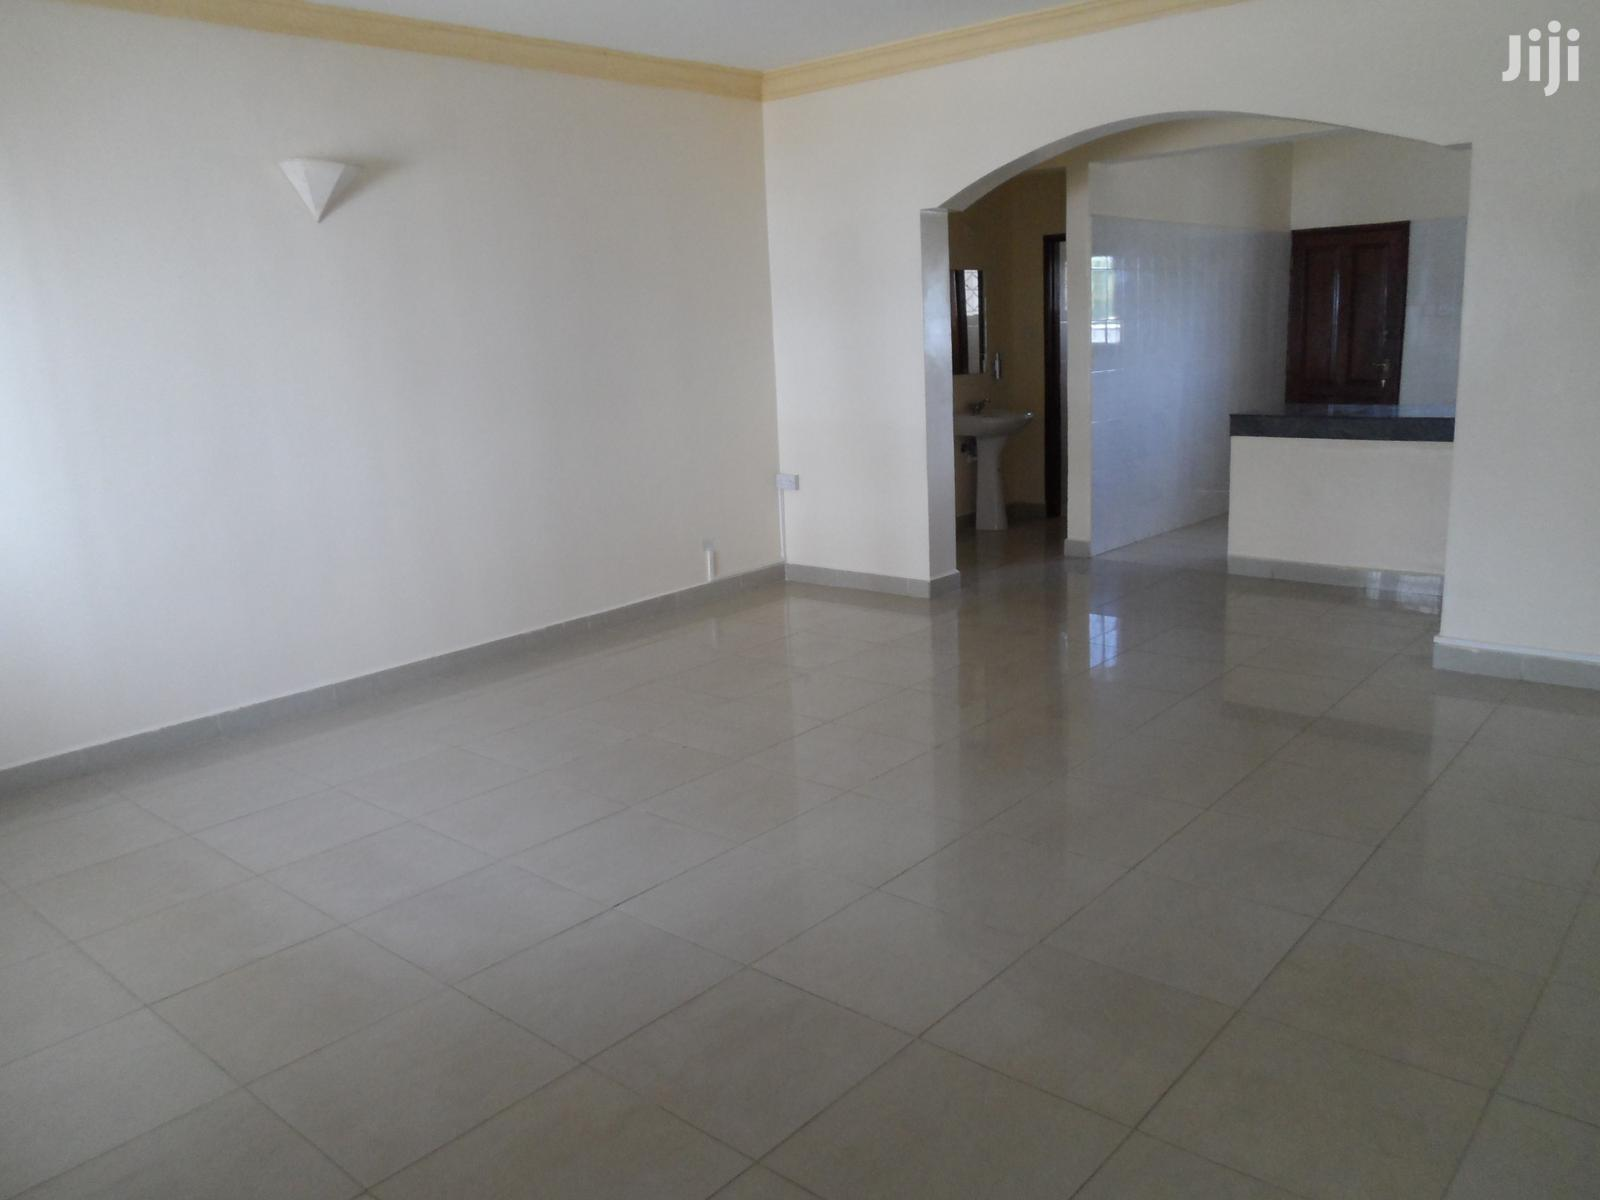 2br Rental Apartment Near City Mall-Benford Homes | Houses & Apartments For Rent for sale in Mkomani, Mombasa, Kenya